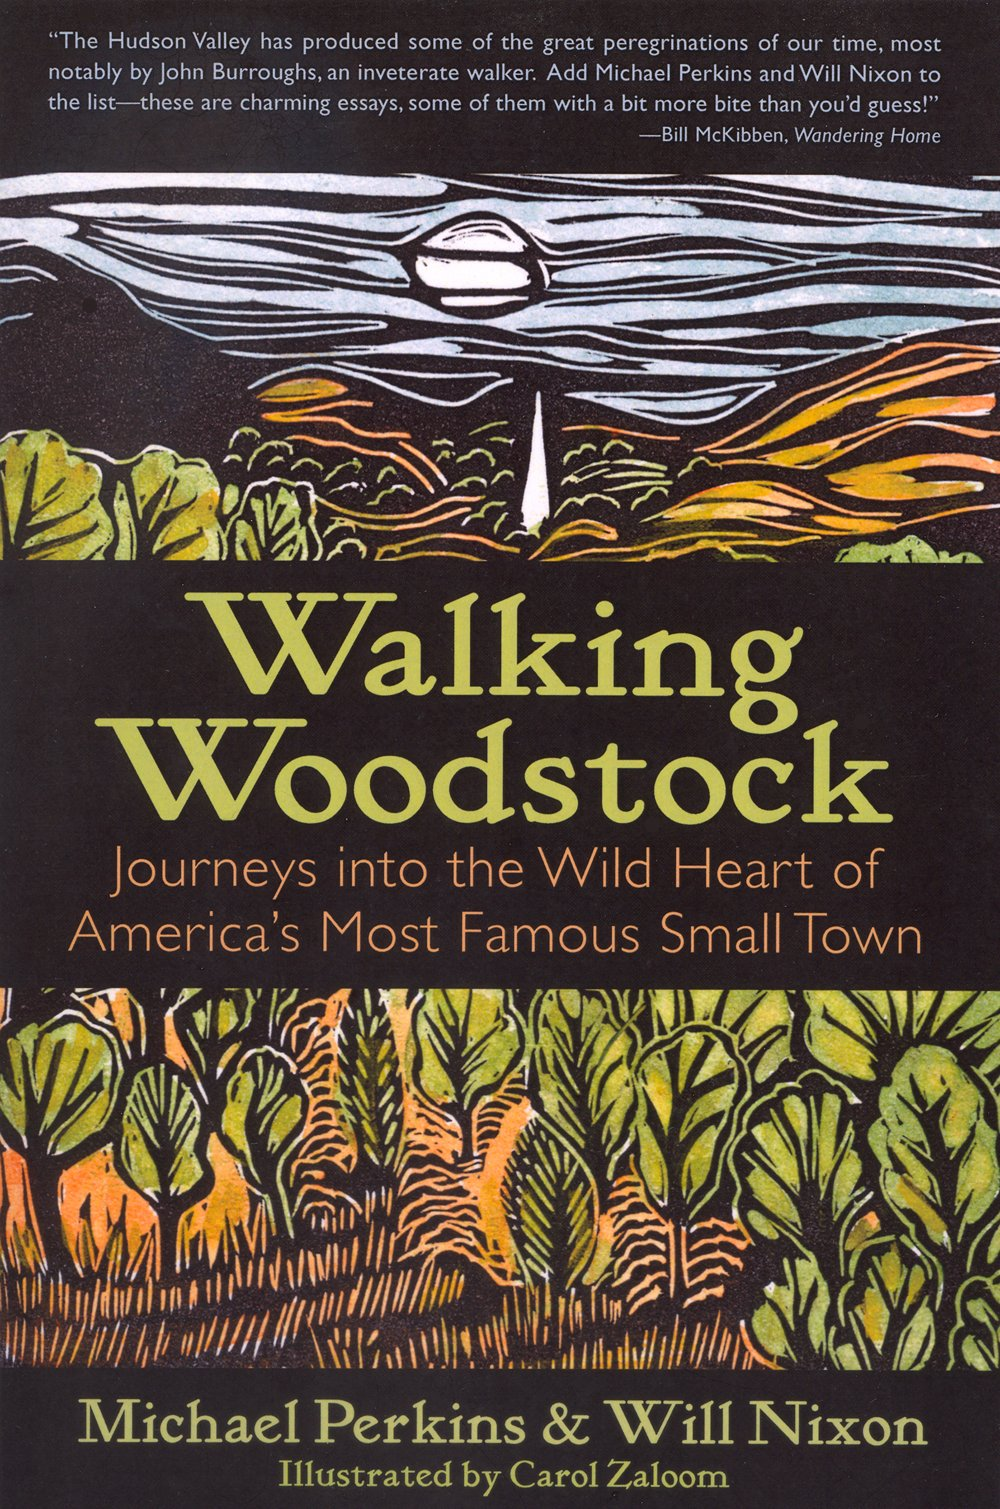 walking woodstock journeys into the wild heart of america s most walking woodstock journeys into the wild heart of america s most famous small town michael perkins will nixon carol zaloom 9781935534396 amazon com